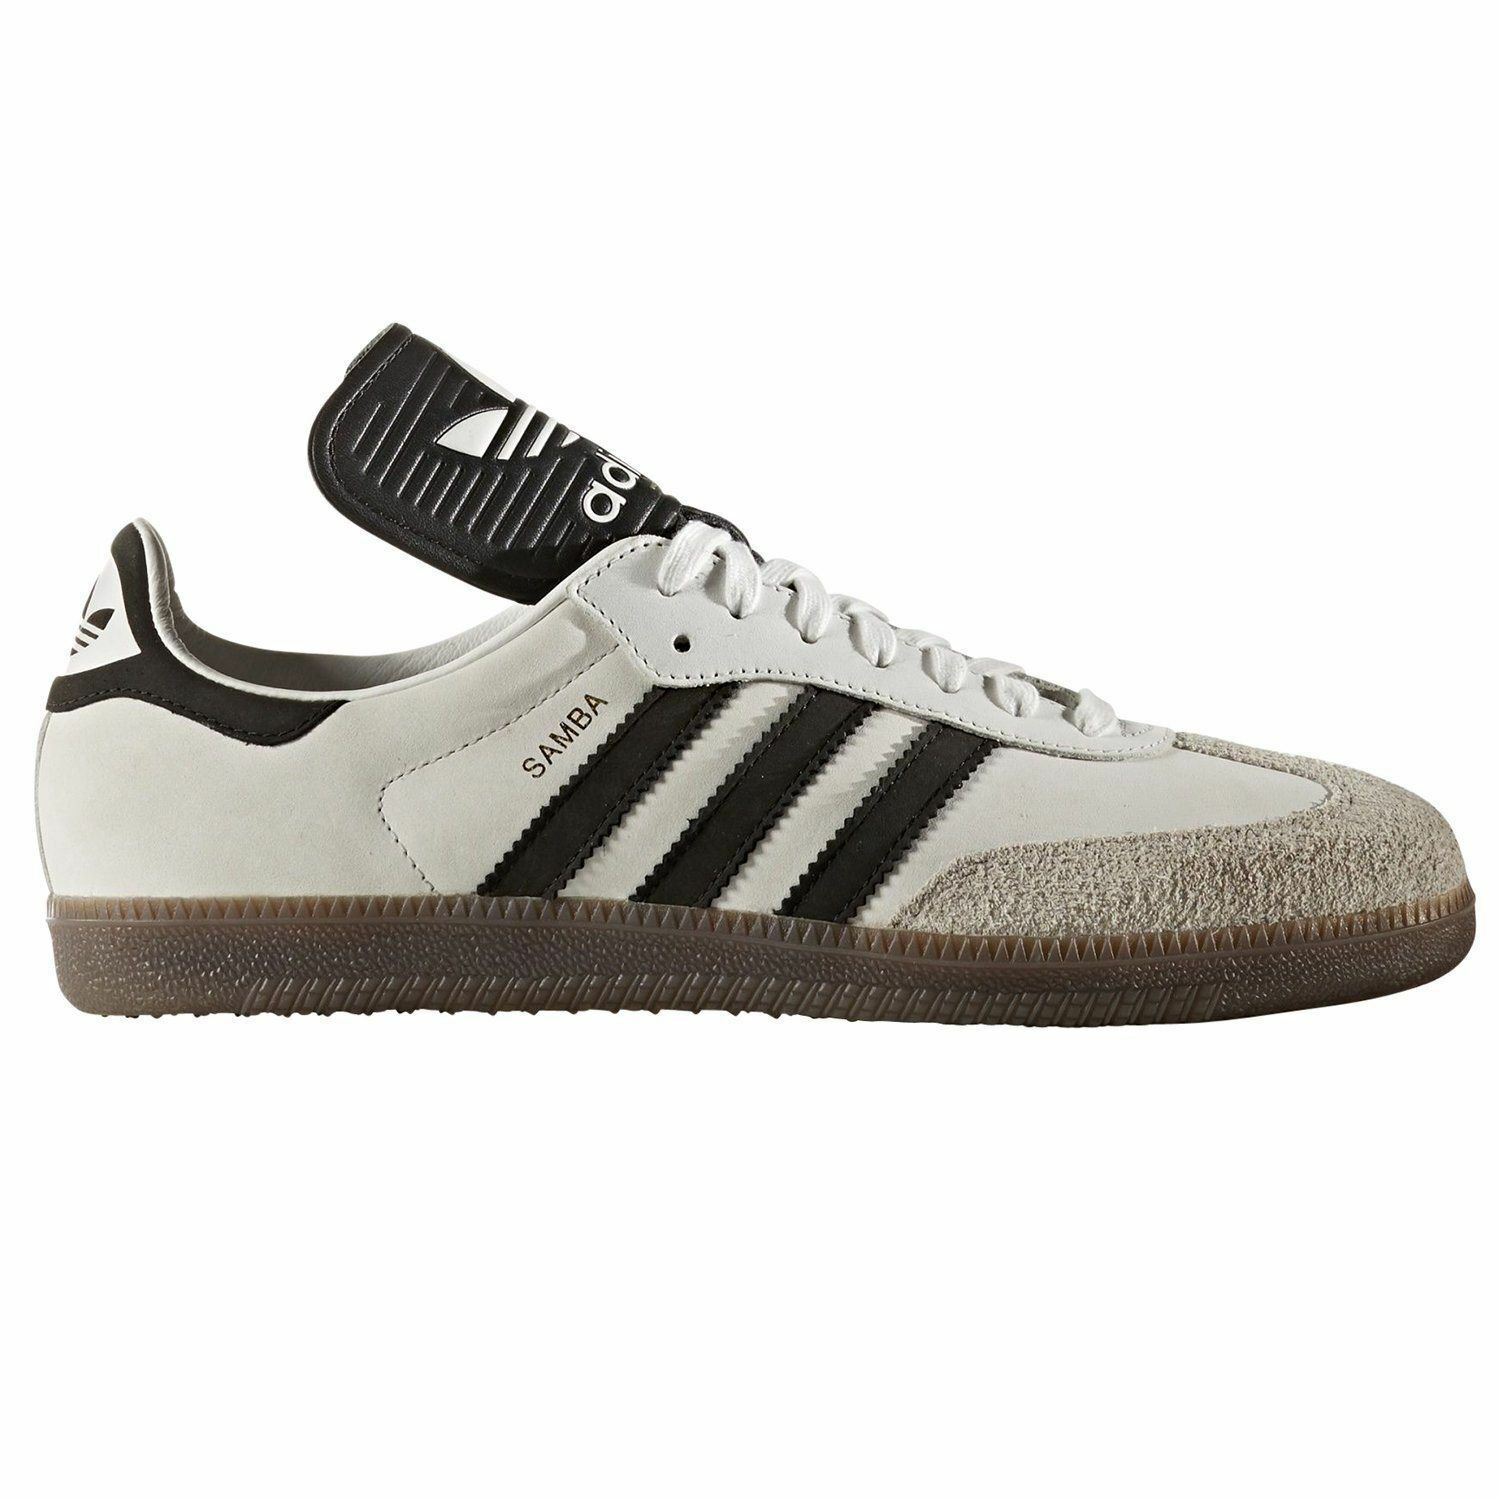 adidas ORIGINALS SAMBA OG MADE IN GERMANY TRAINERS blanc  RETRO VINTAGE RARE NEW